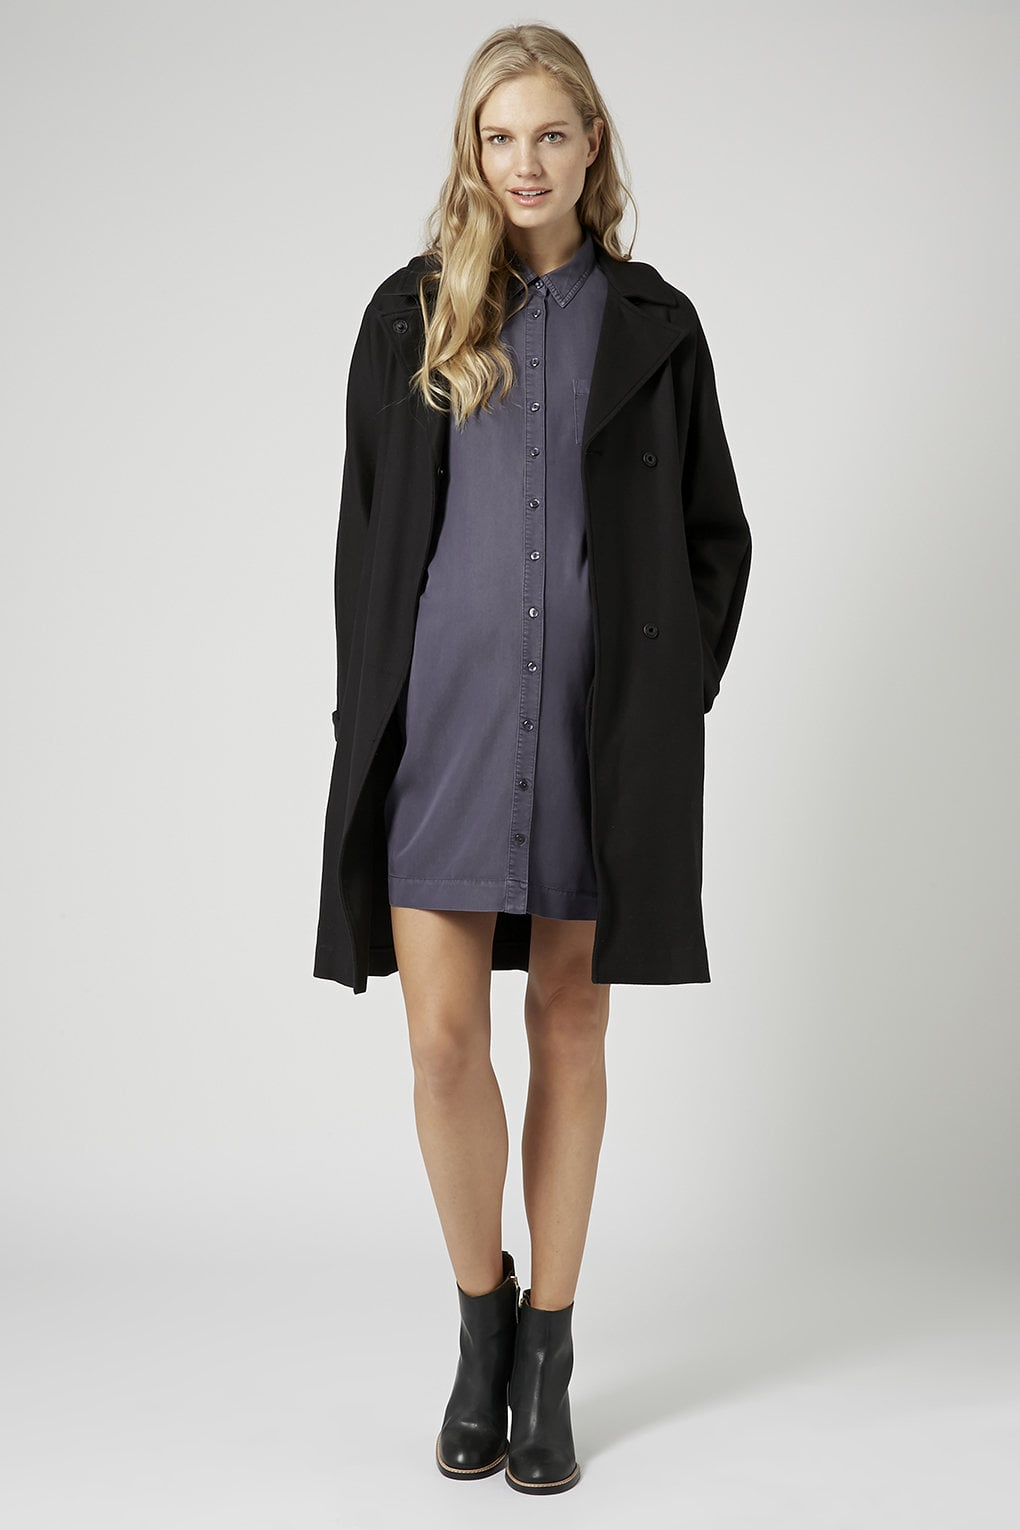 Topshop Tencel Shirtdress